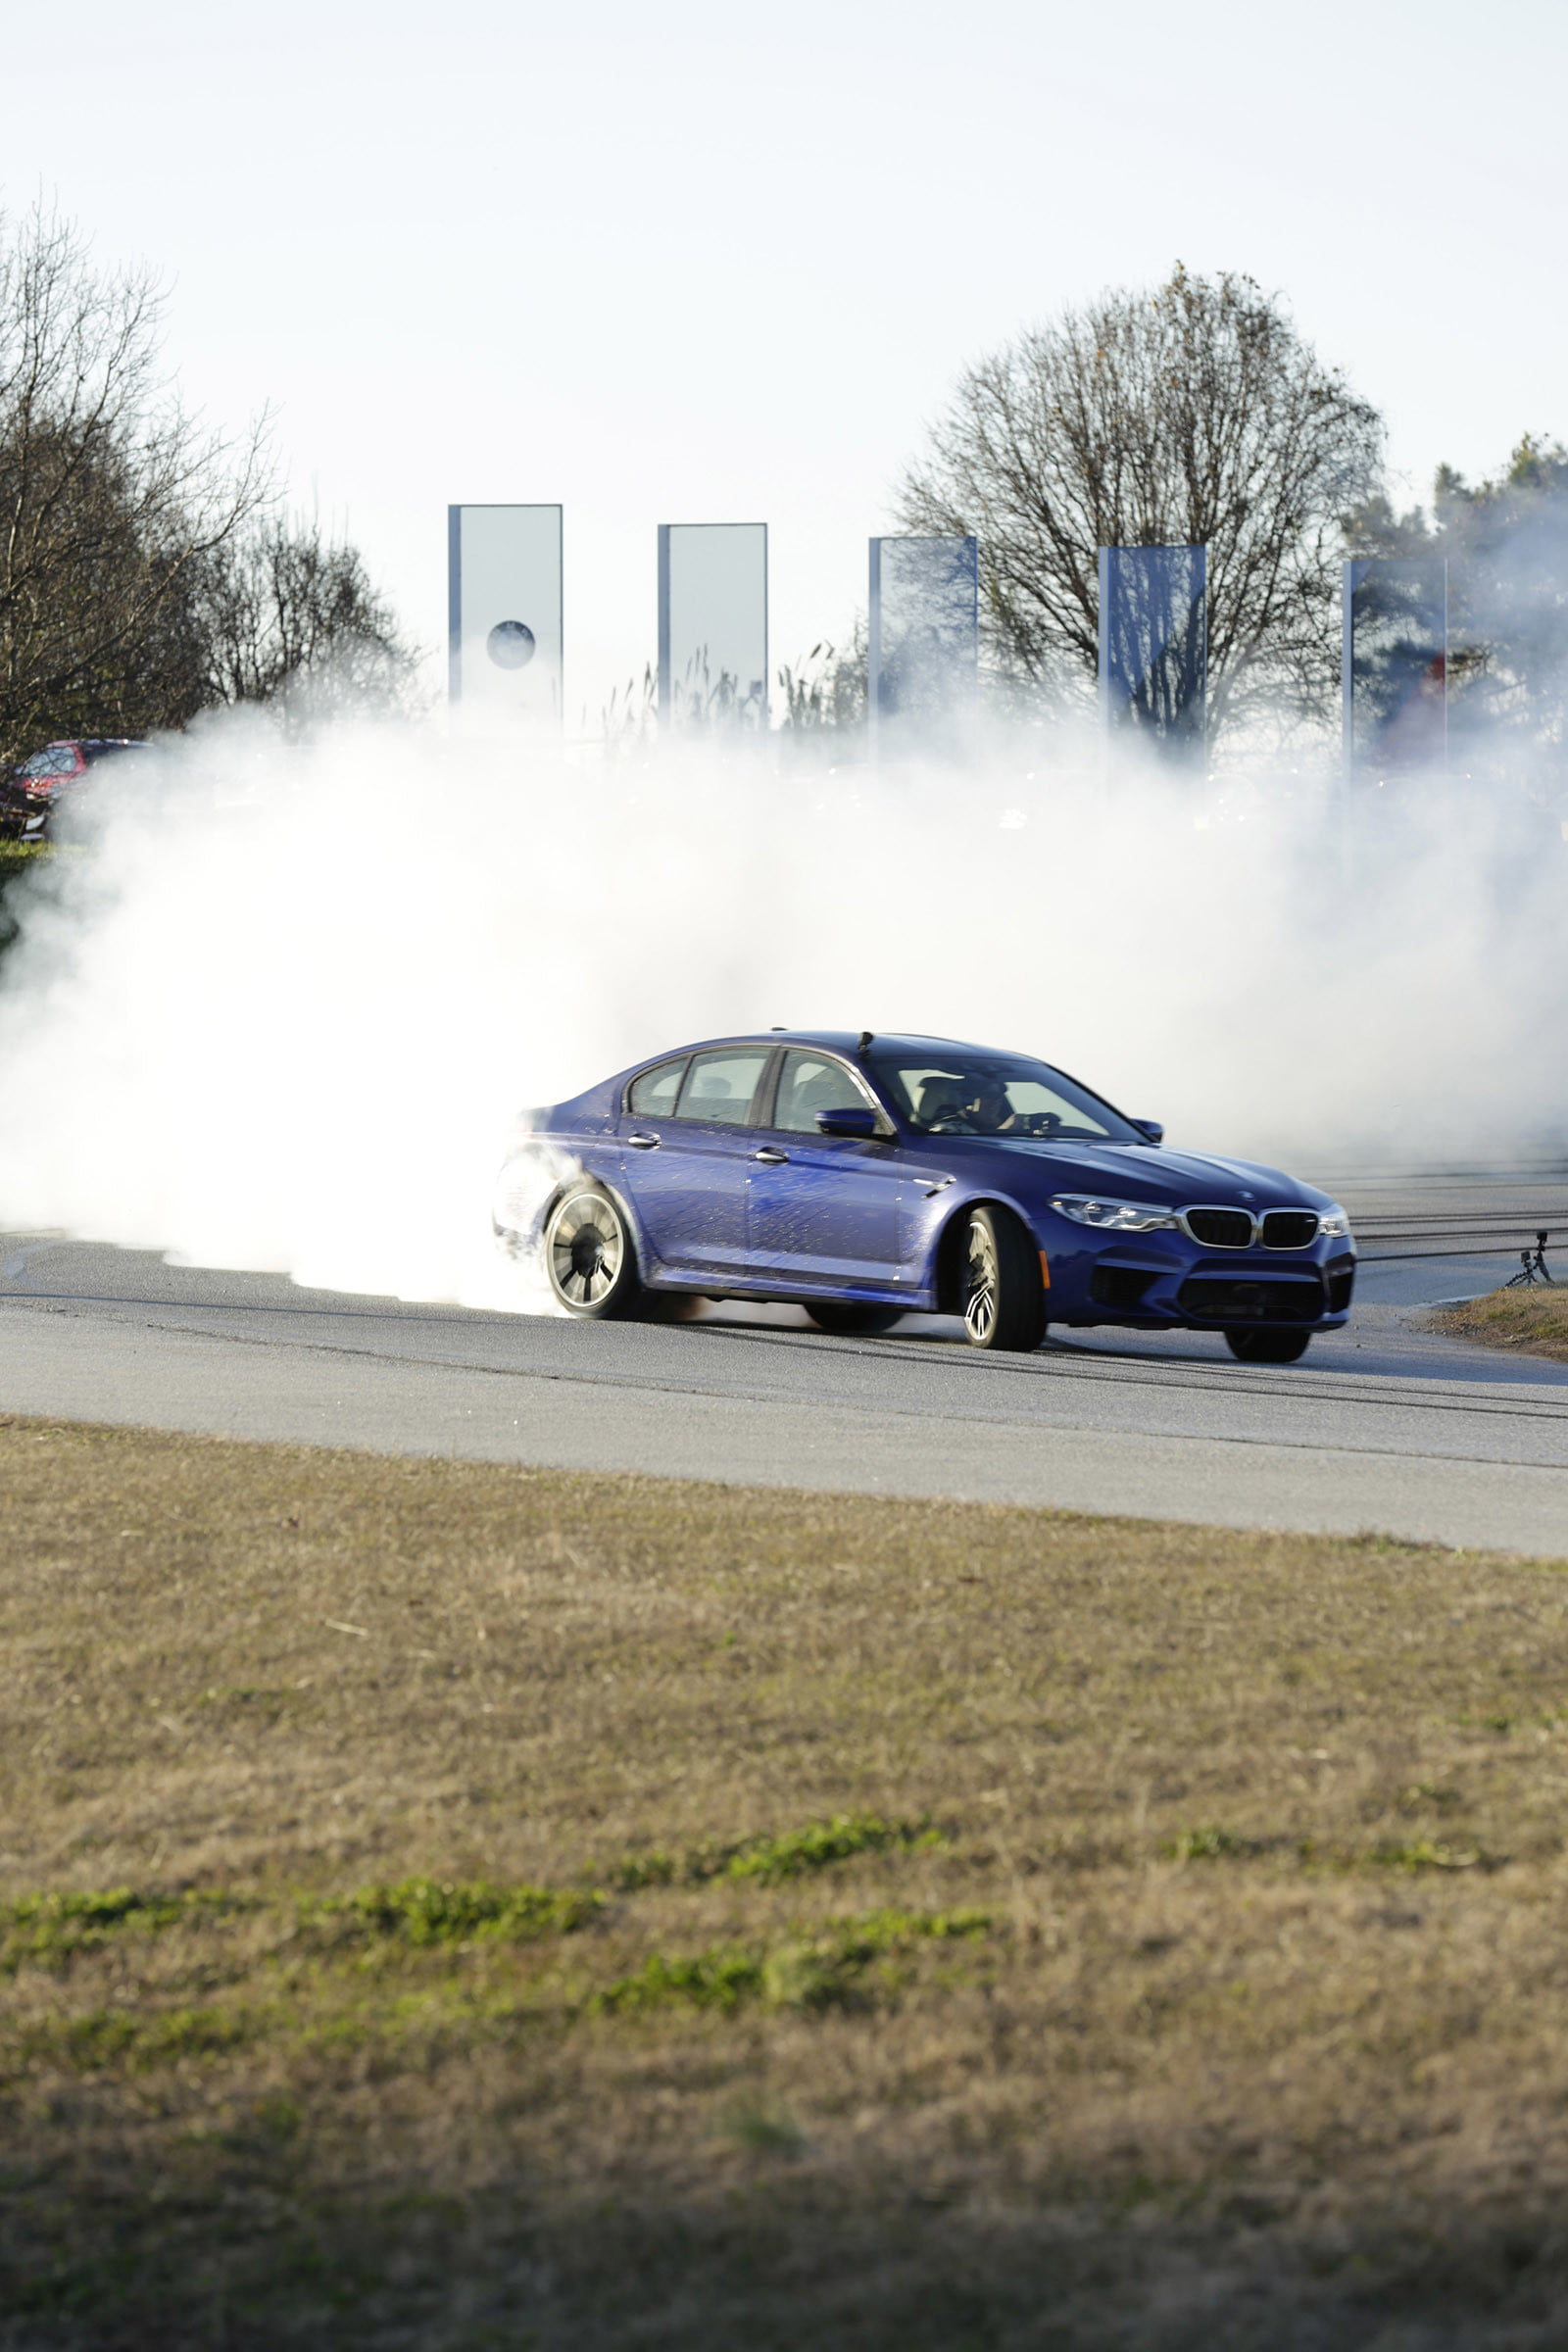 bmw sets two guinness world records drifting sideways for 2325 miles record  longest drift with 2018 m5